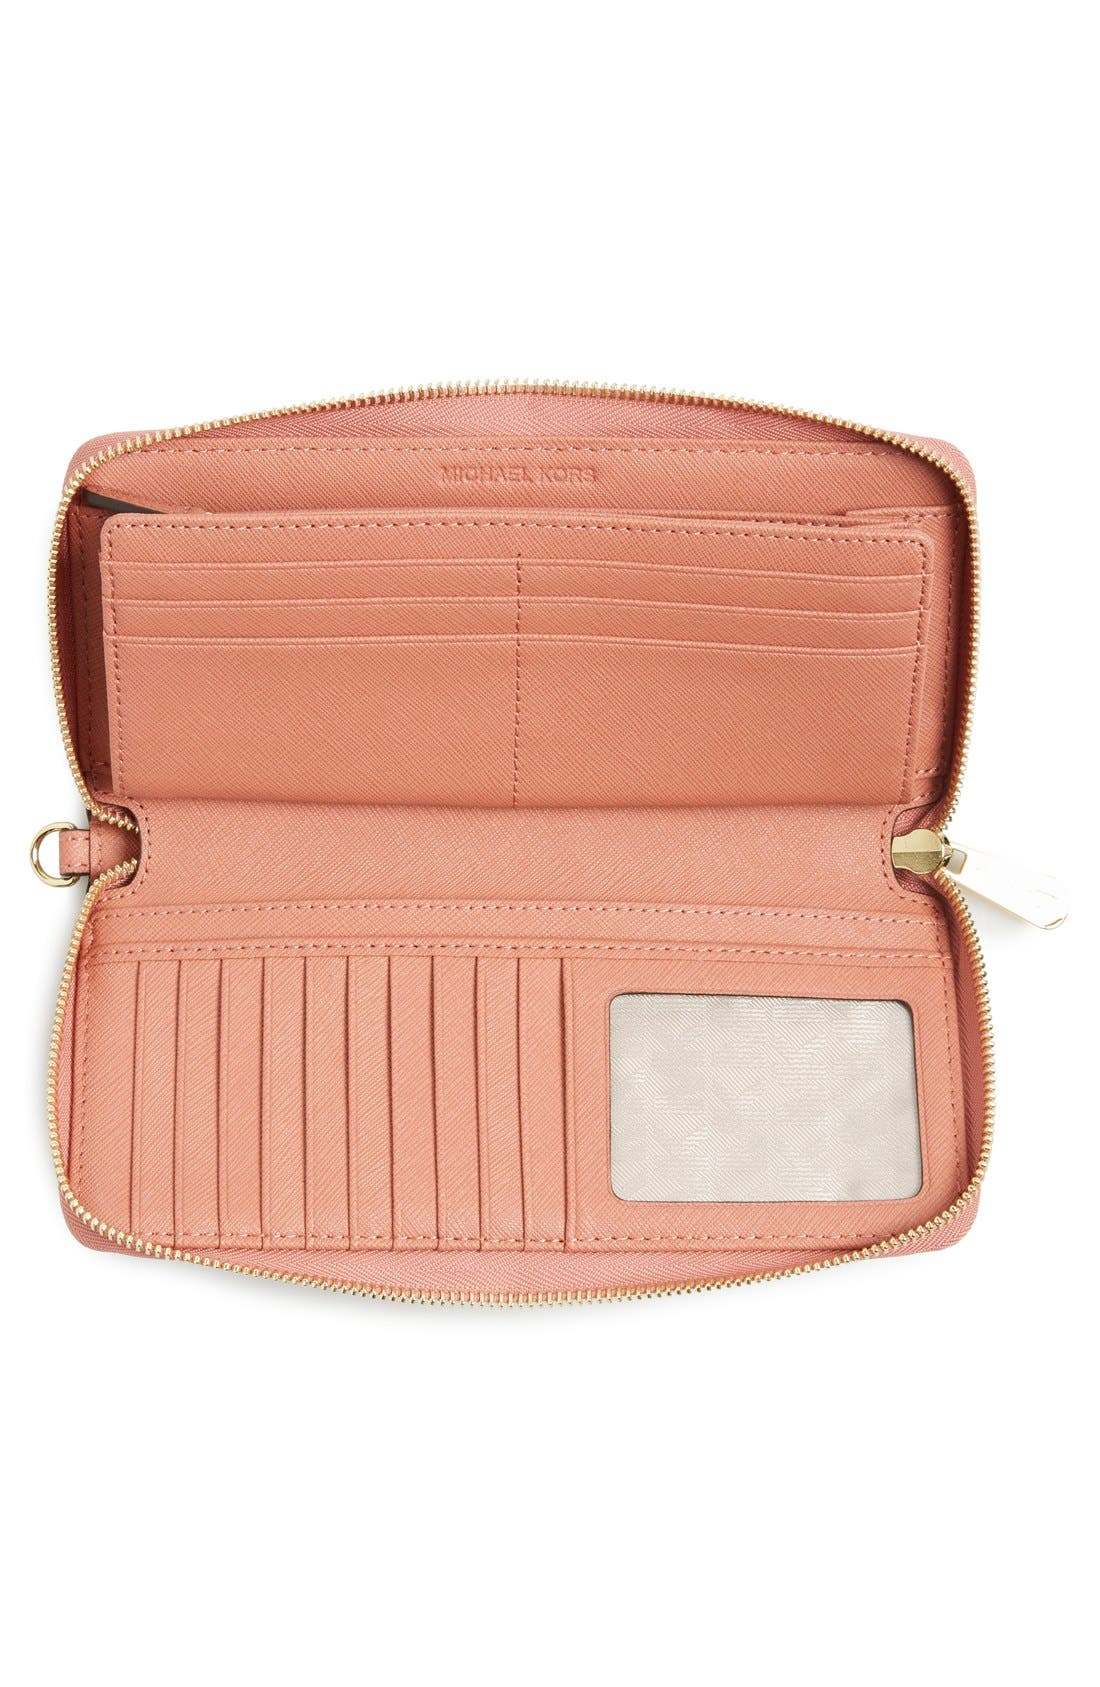 'Jet Set' Leather Travel Wallet,                             Alternate thumbnail 28, color,